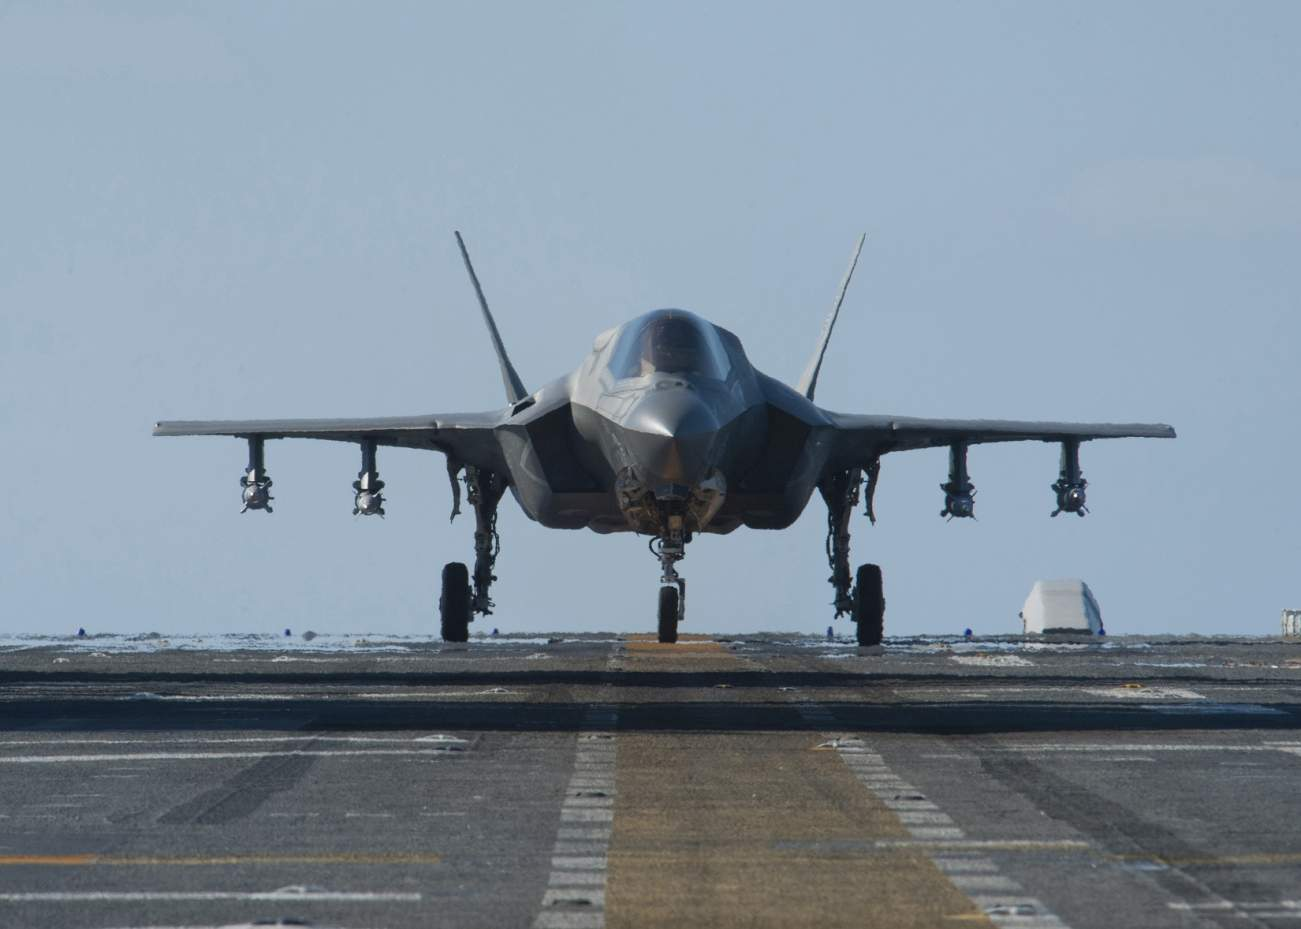 F-35s and More: Japan Seeks Record Military Budget for Eighth Year Running